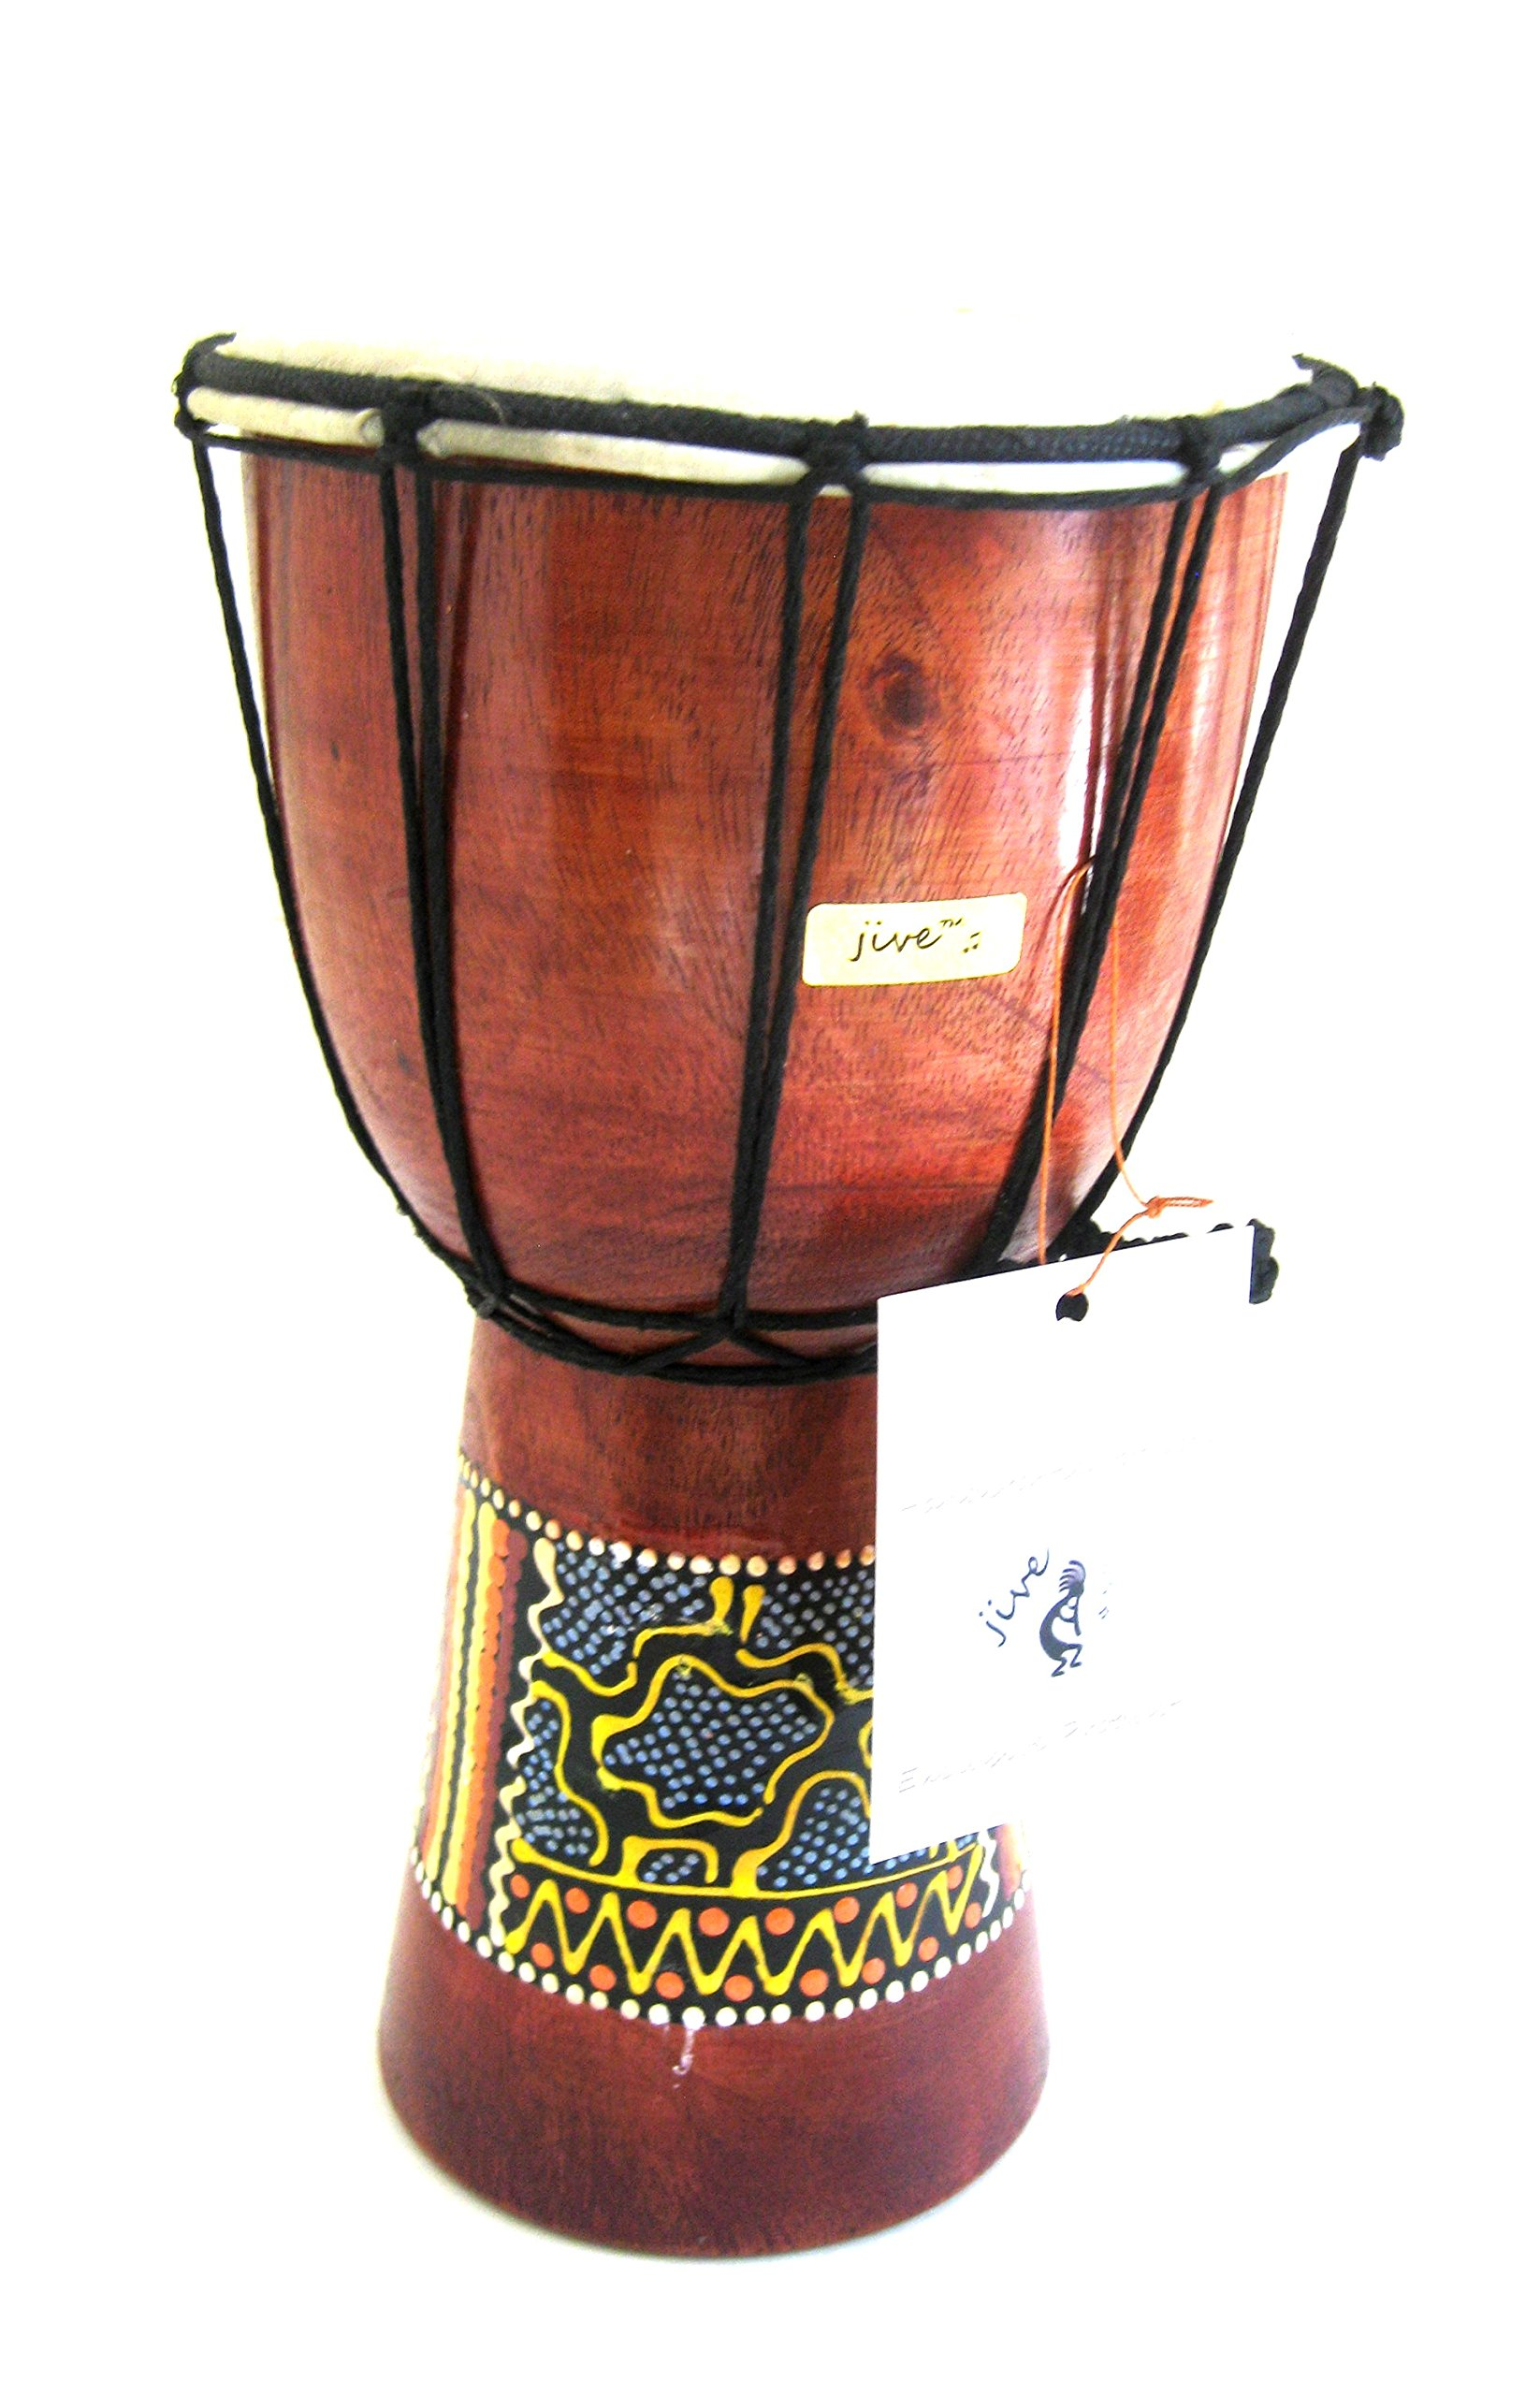 Djembe Drum - Solid Wood Carved & Painted African Percussion Bongo Drum, SIZE 9'' - JIVE BRAND, Professional Sound